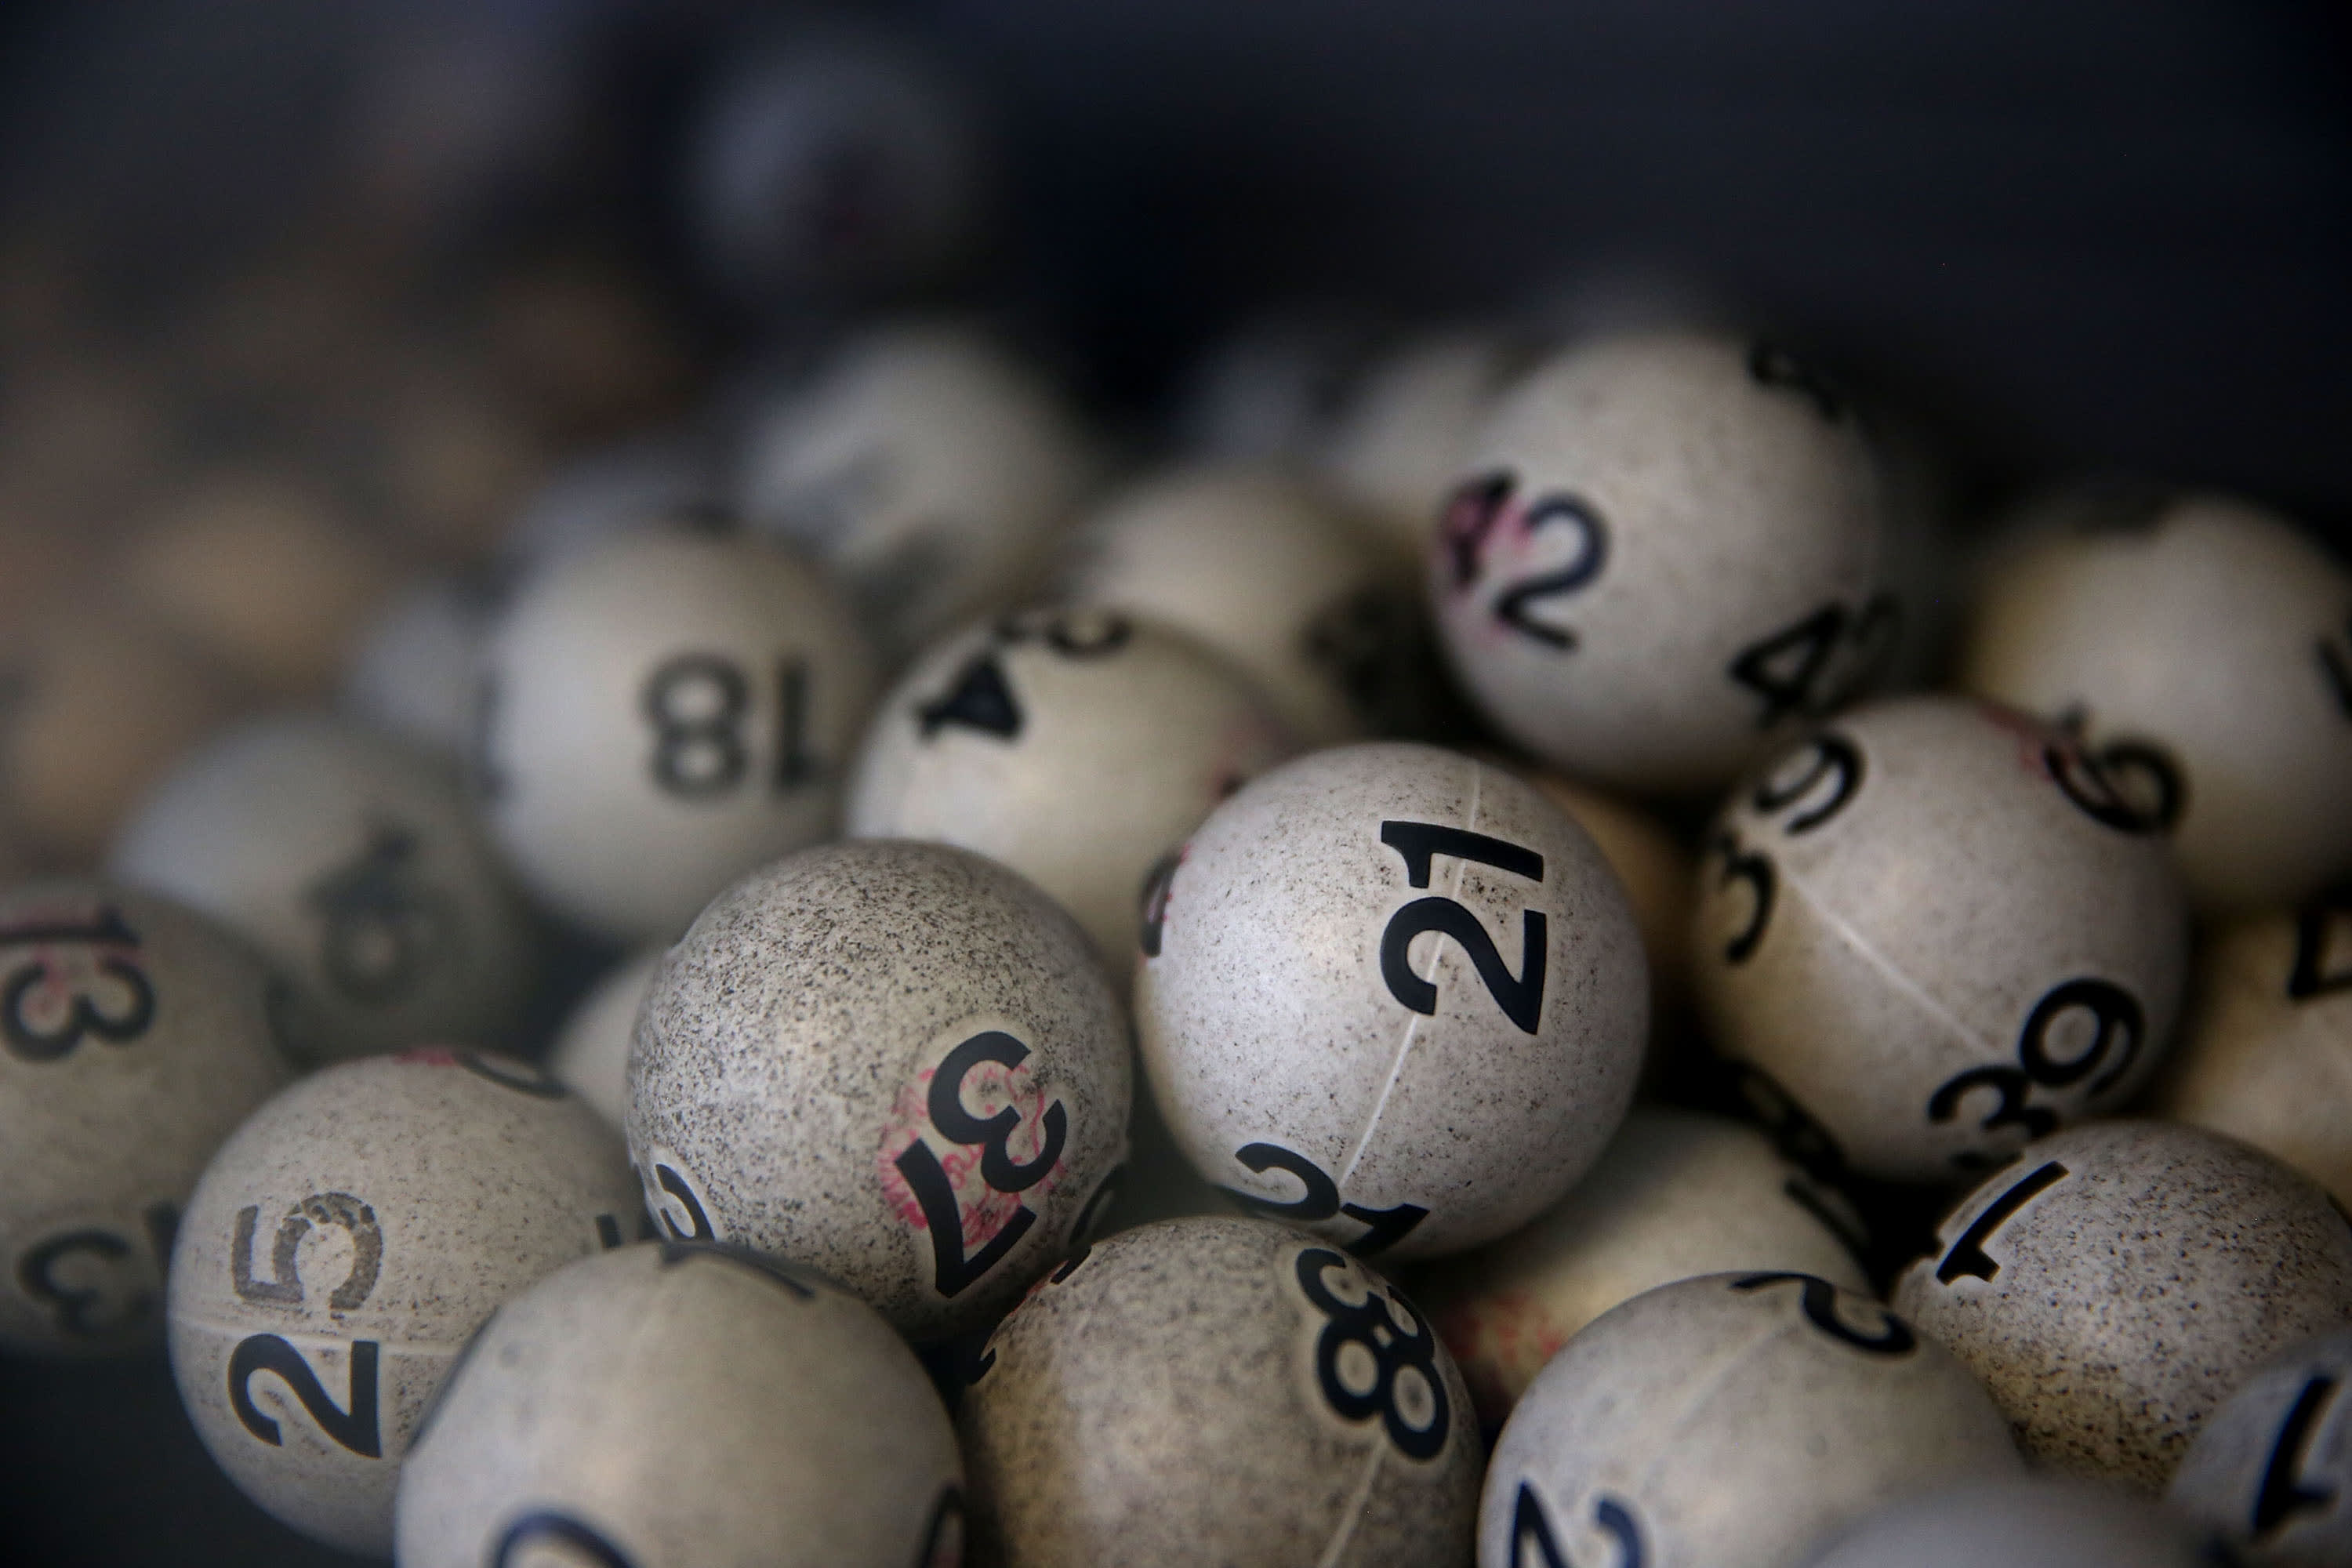 Mastermind of lottery fraud admits he rigged jackpots